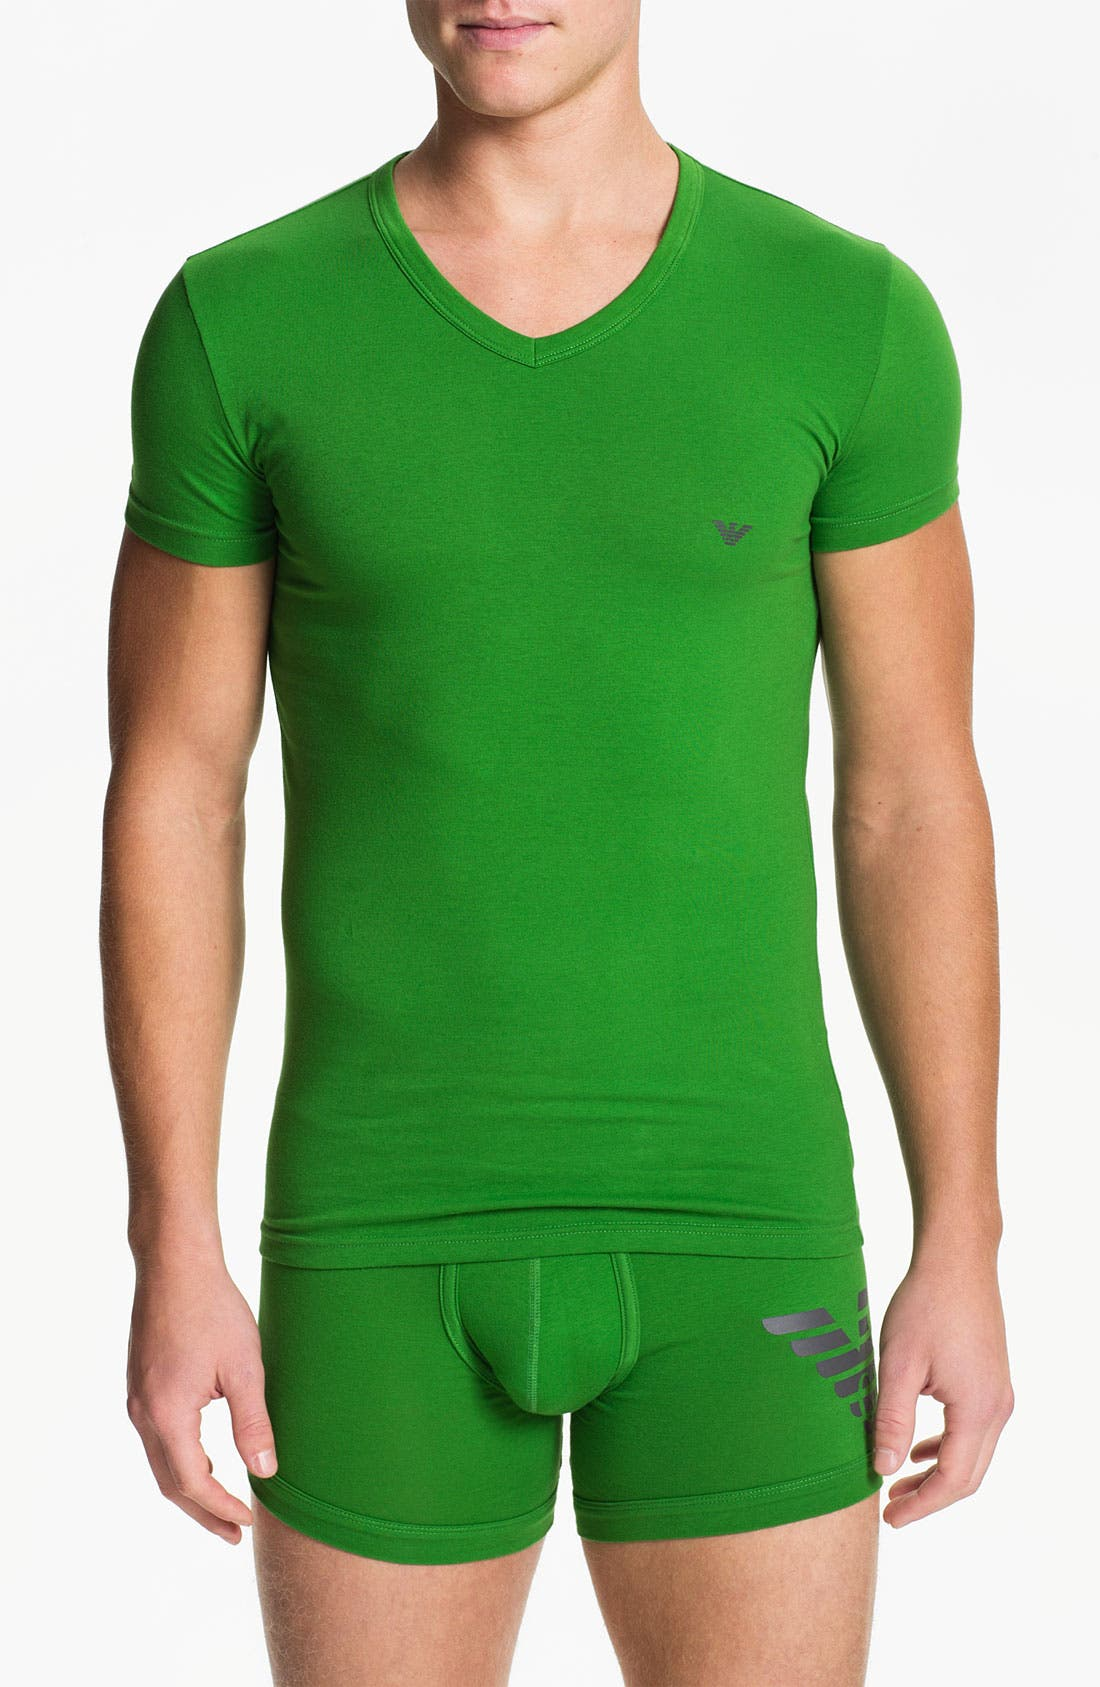 Alternate Image 1 Selected - Emporio Armani 'Eagle' Stretch Cotton V-Neck T-Shirt